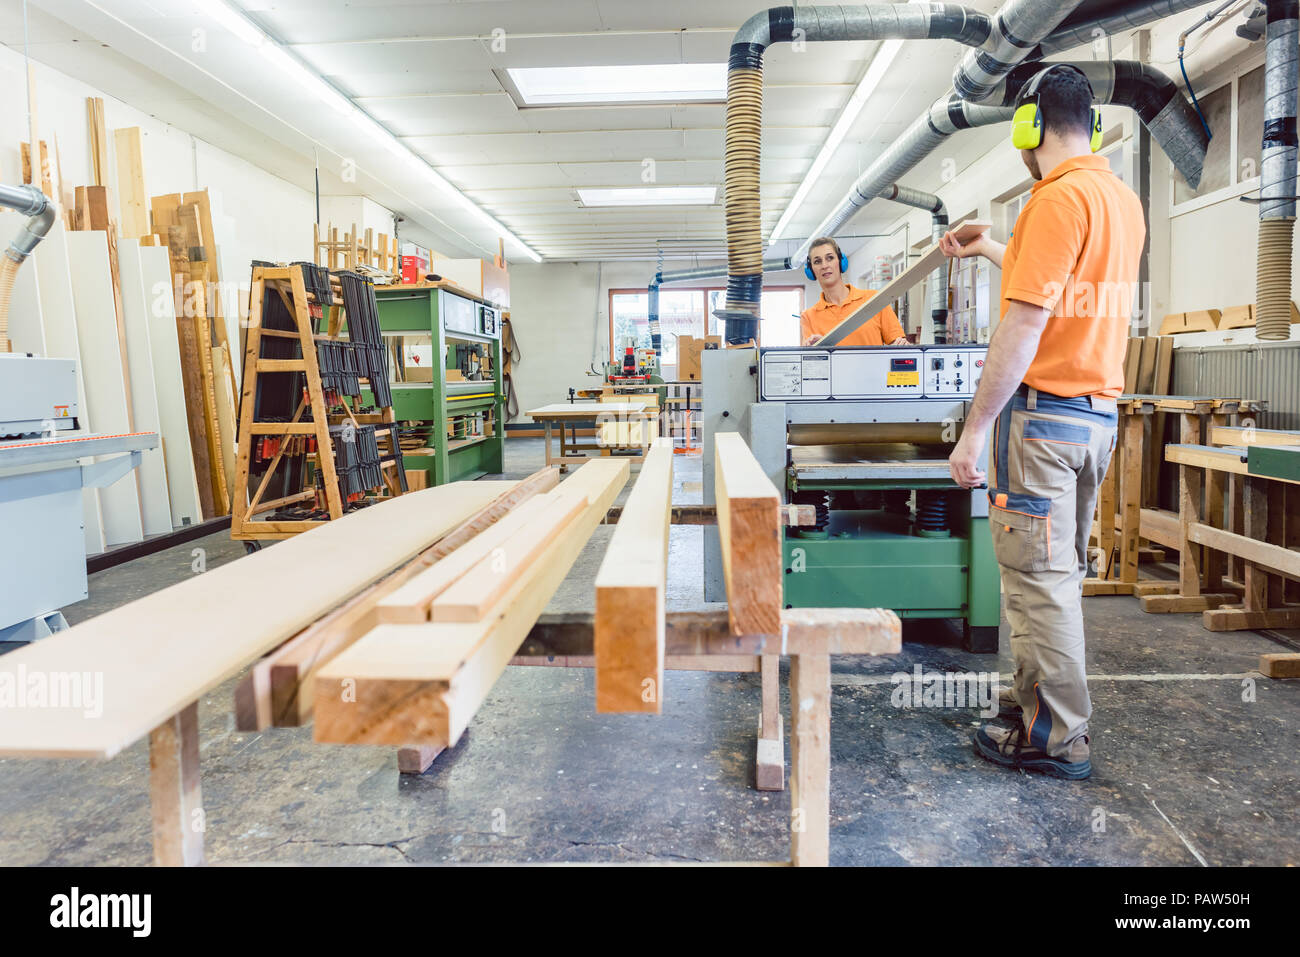 Lots of wood work to do for the carpenters - Stock Image